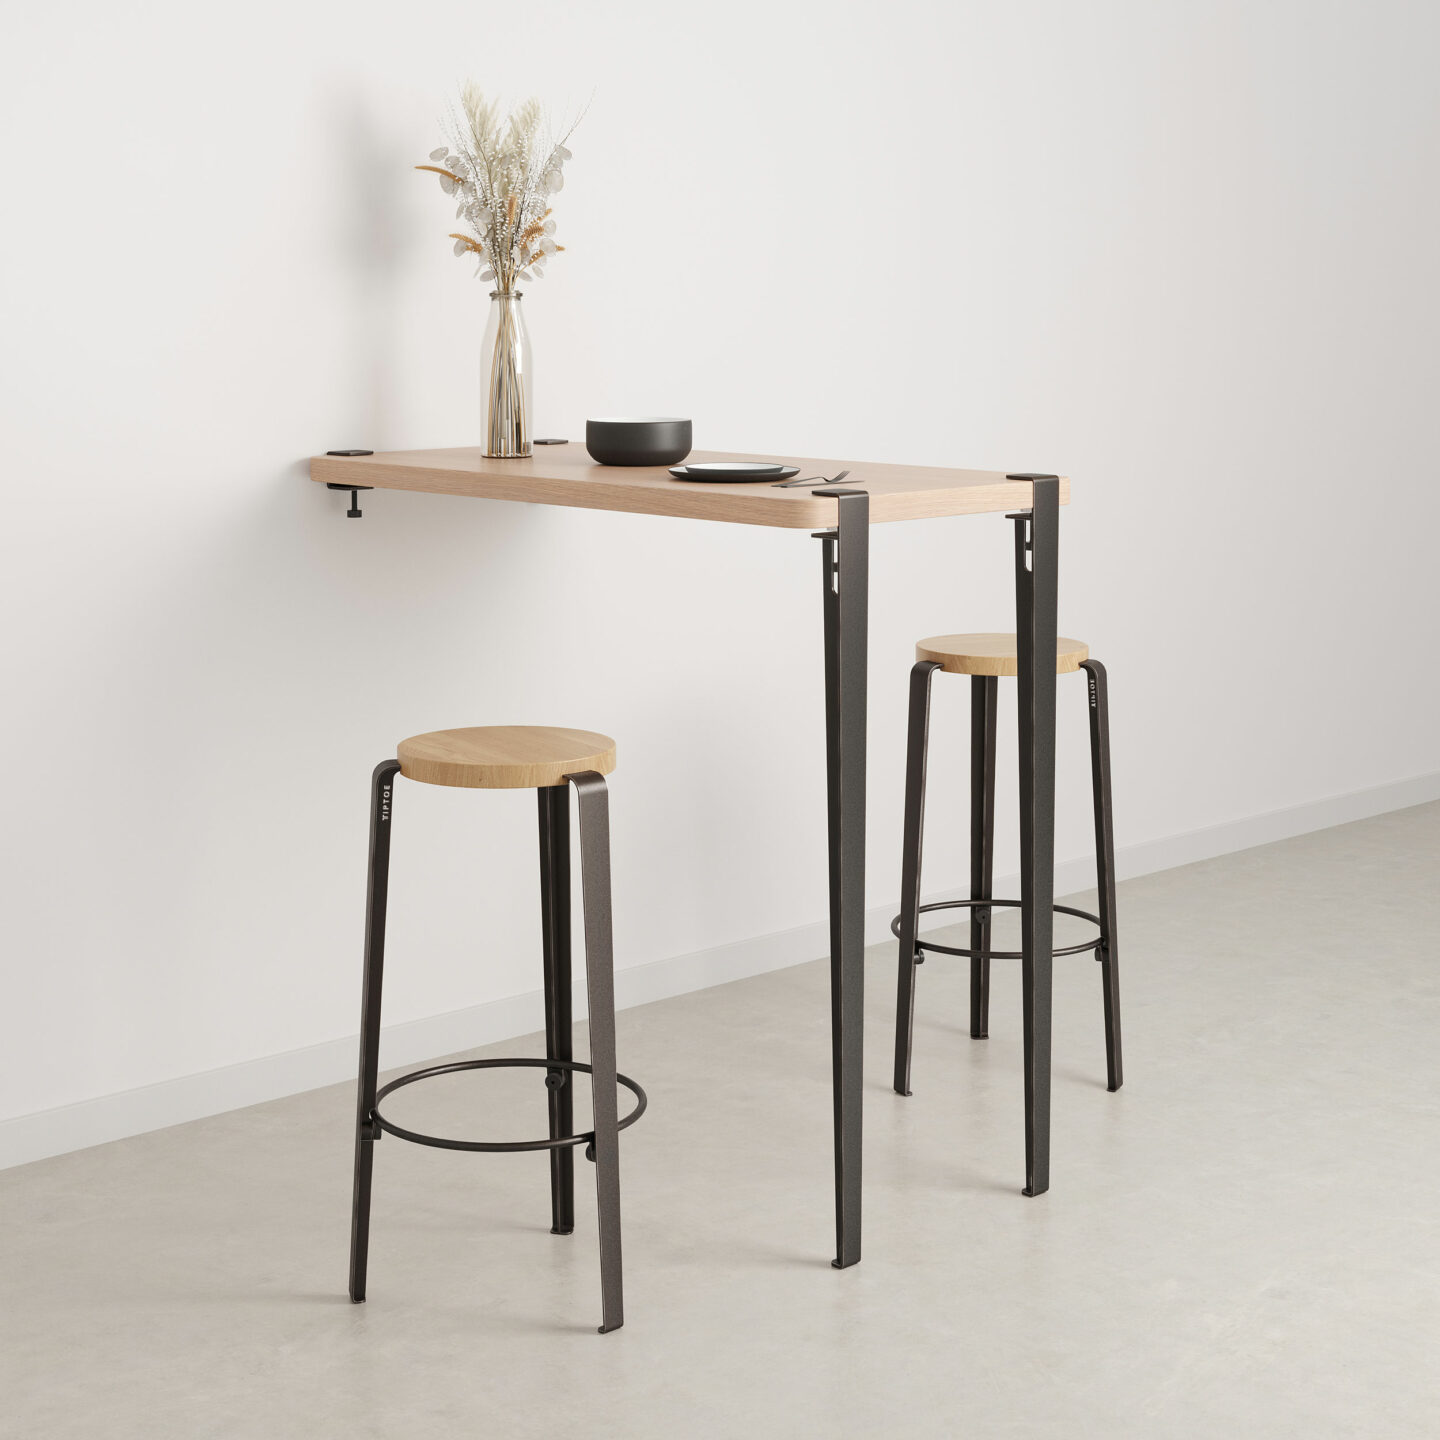 wall mounted bar table height 110cm eco certified wood